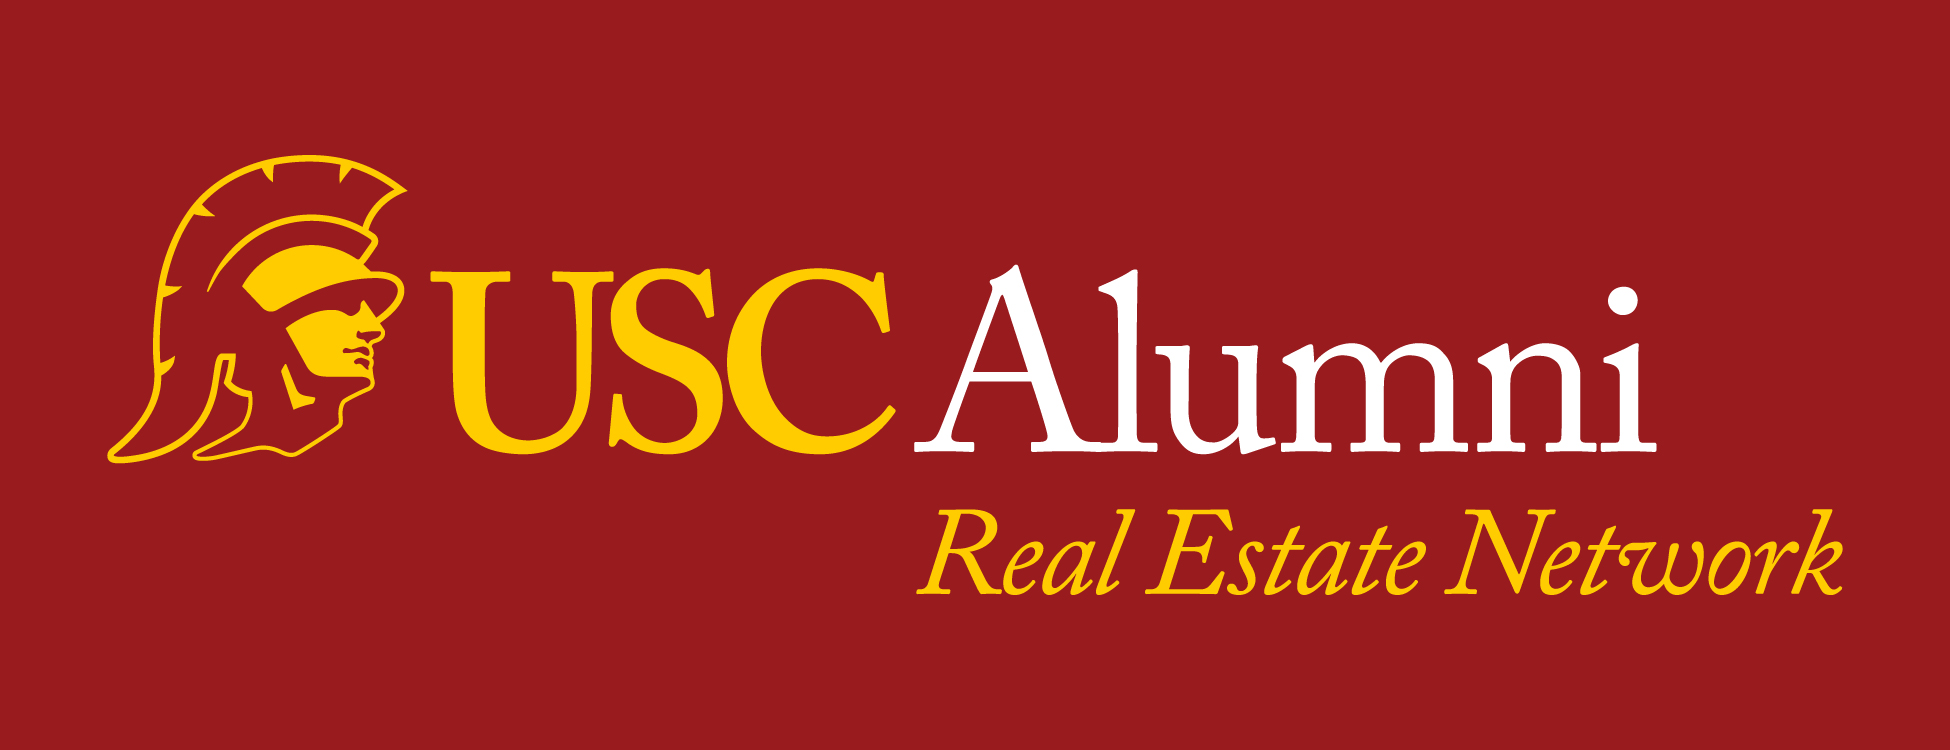 USC Alumni Real Estate Network